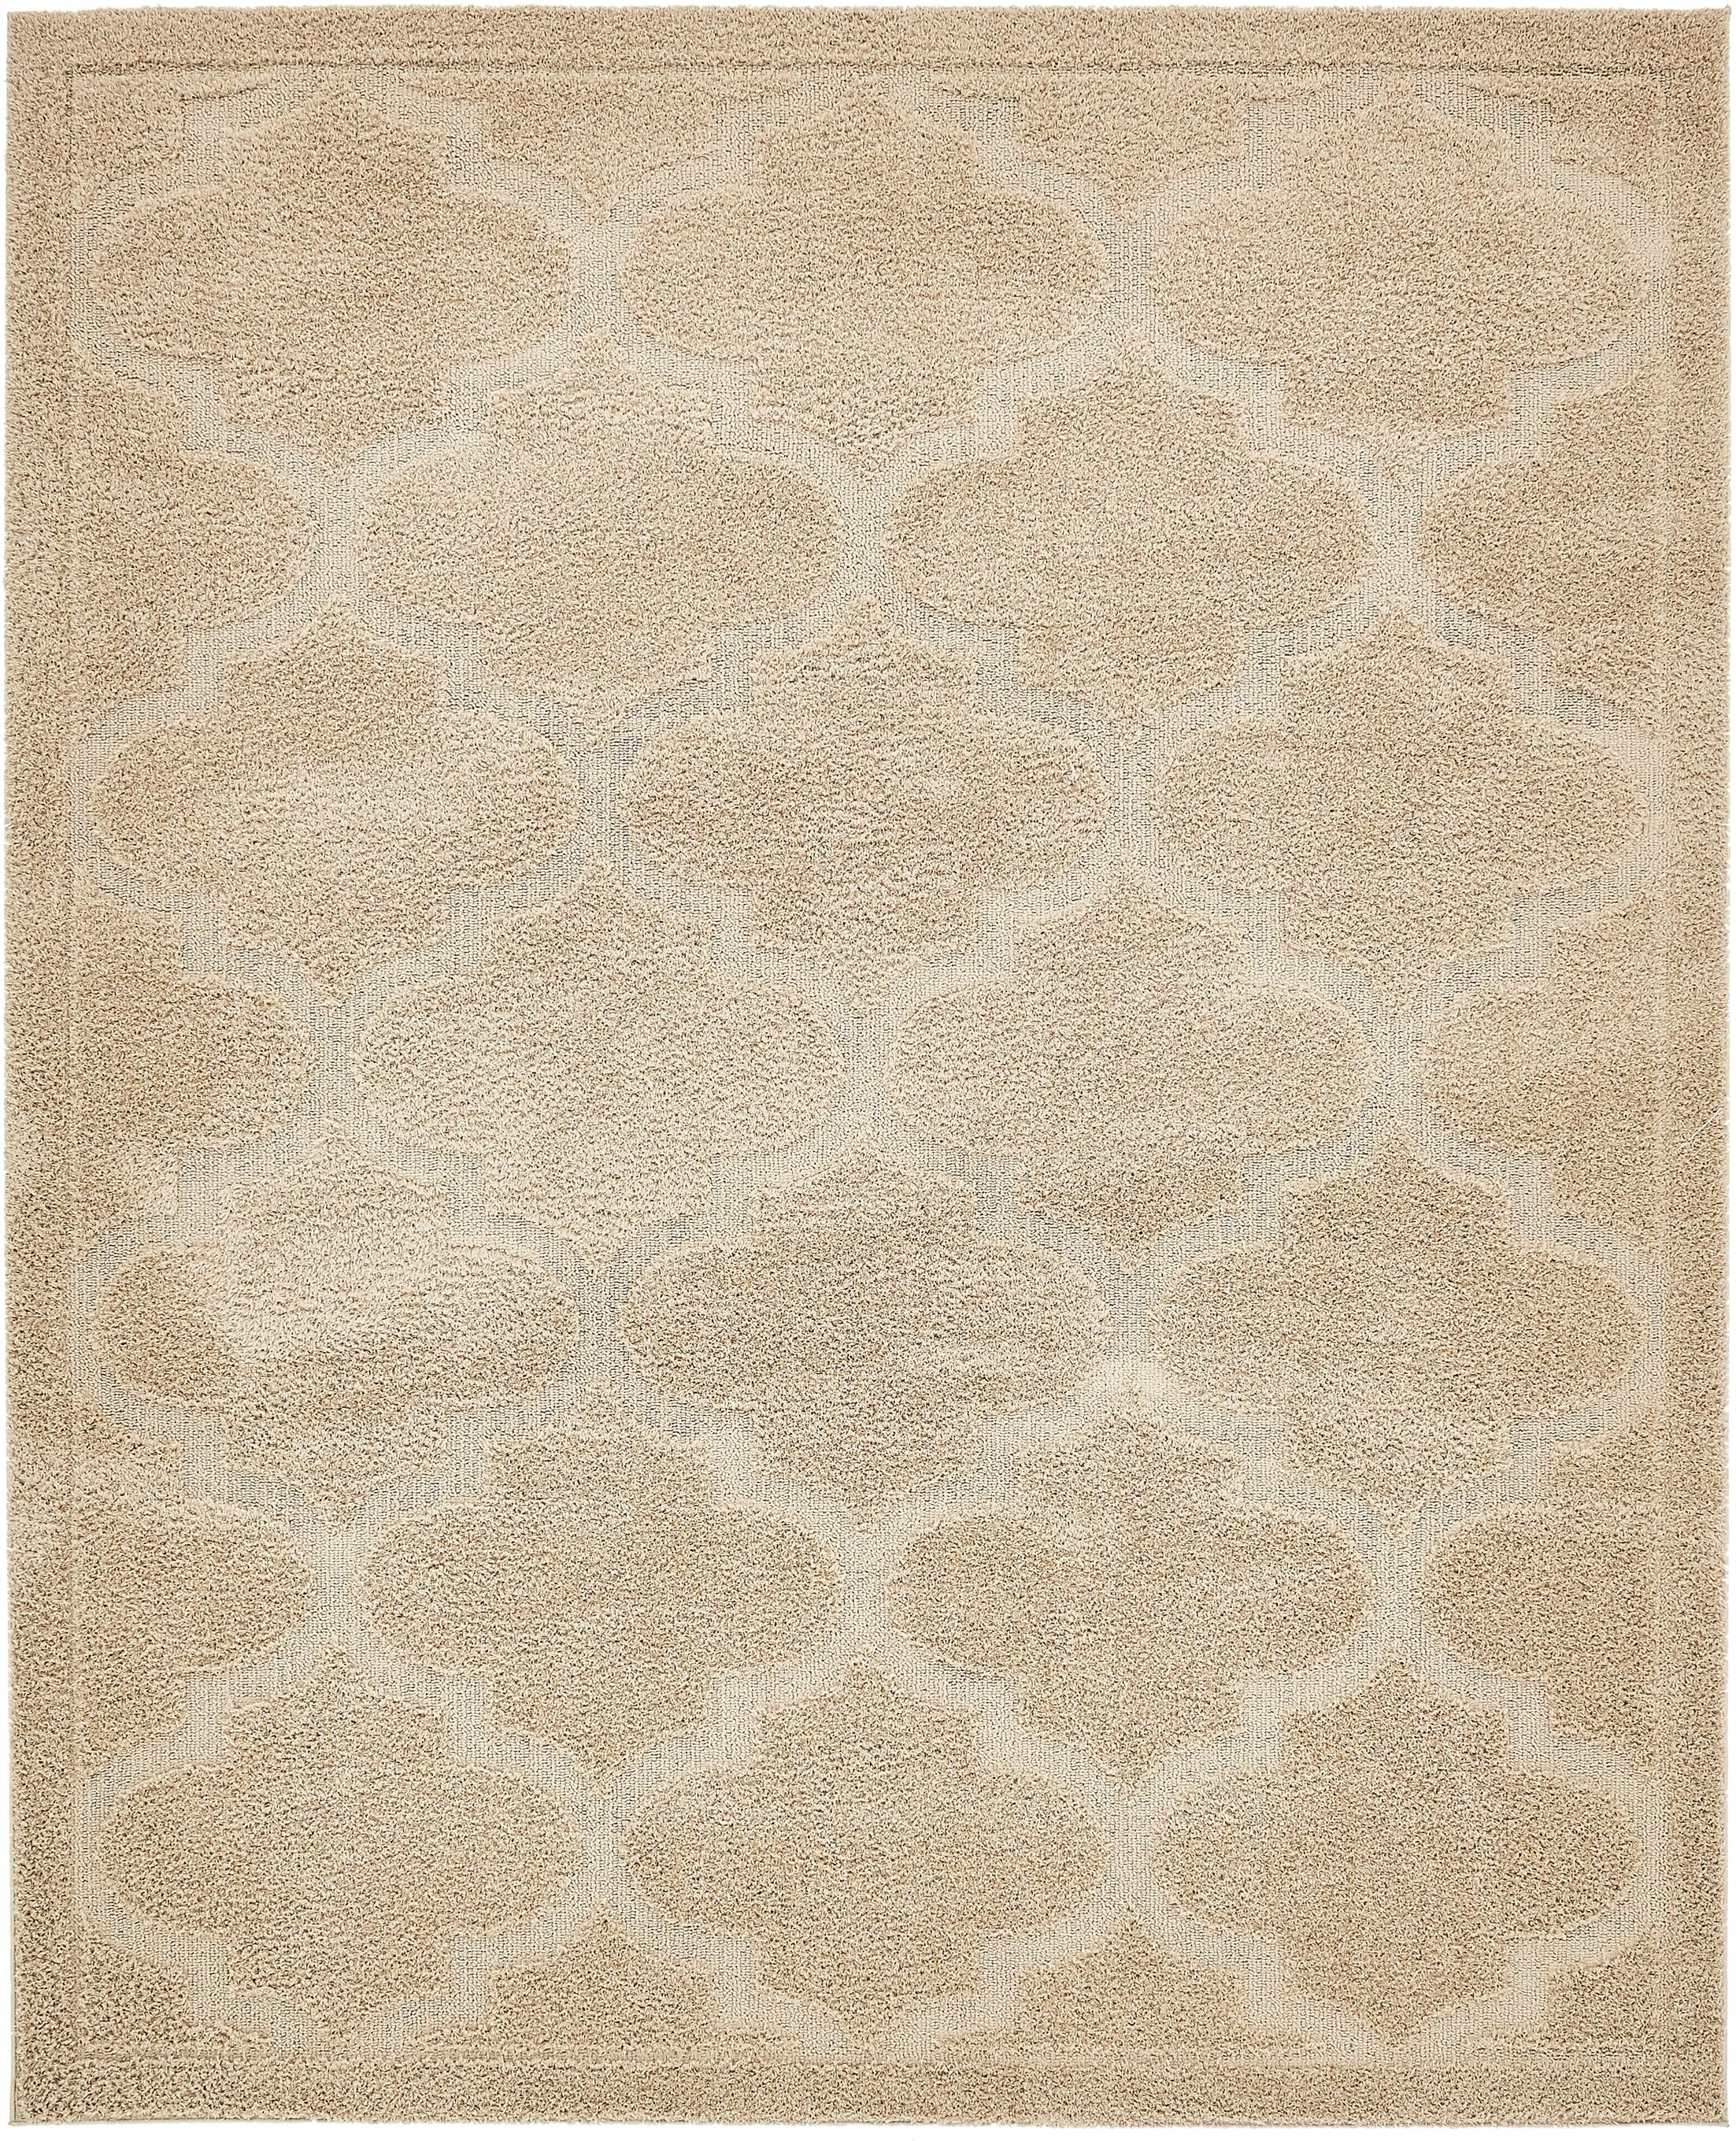 Moore Beige Area Rug Rug Size: Rectangle 8' x 10'